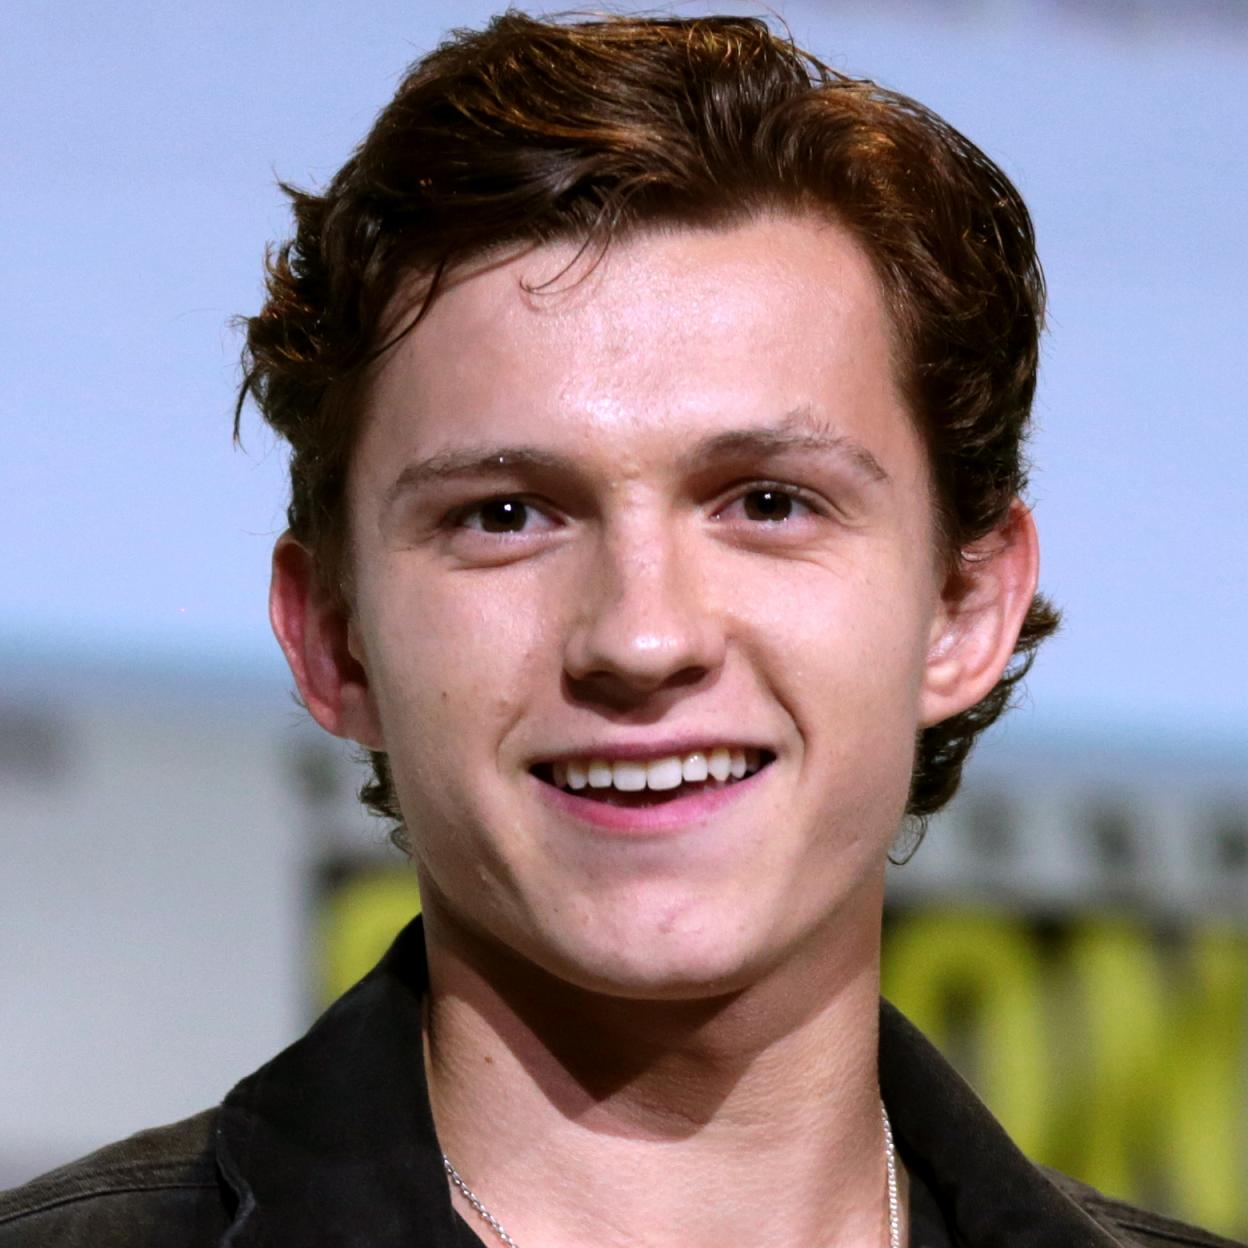 Forum on this topic: Anne Barton (actress), tom-holland-born-1996/